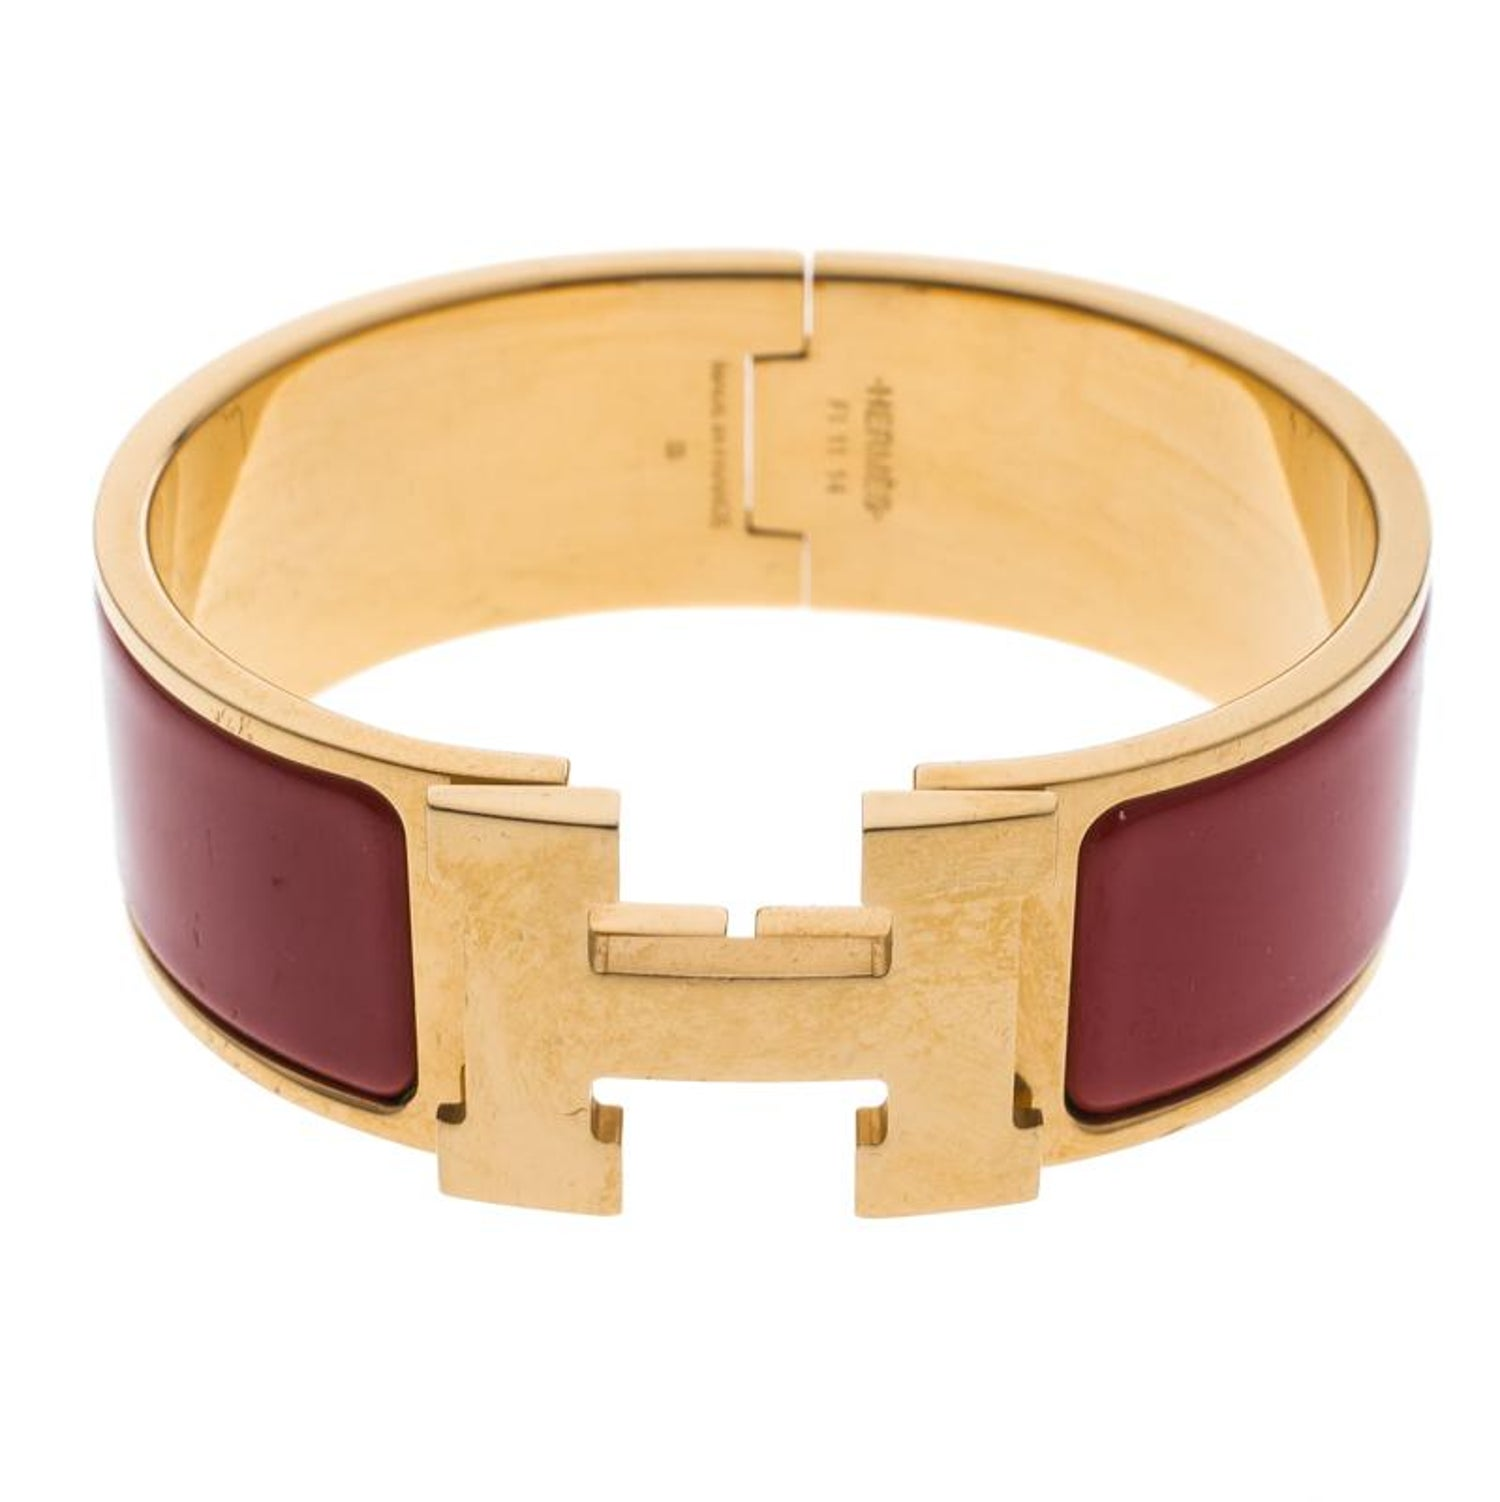 Hermes Clic Clac H Red Enamel Gold Plated Wide Bracelet PM at 1stdibs 39371069c4c